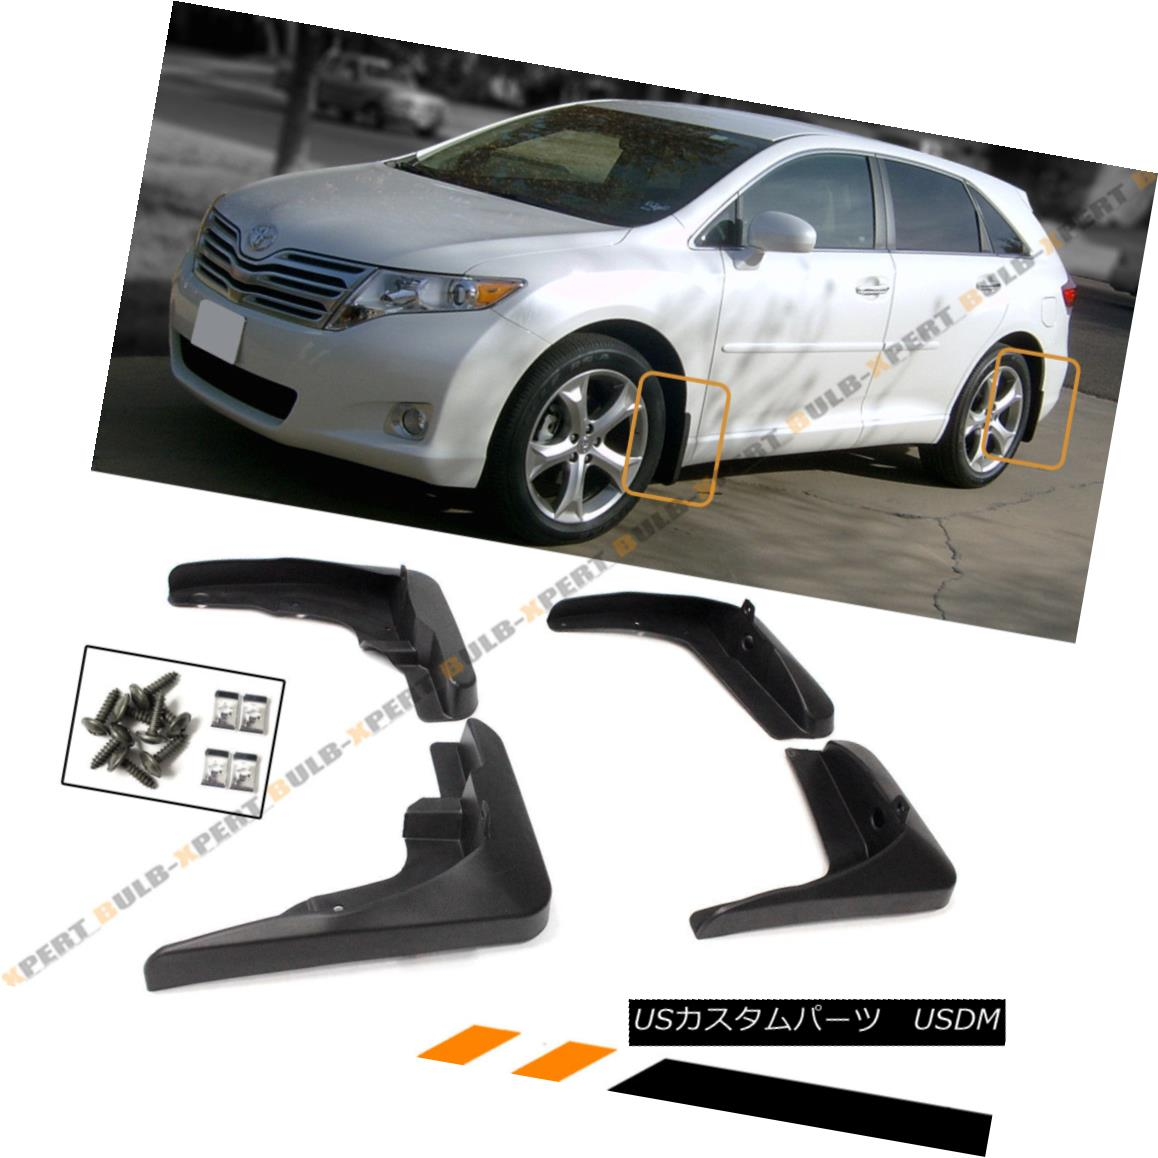 Side Guard Deacal Carbon Sticker for Hyundai Veloster 2011 w//Tracking No.